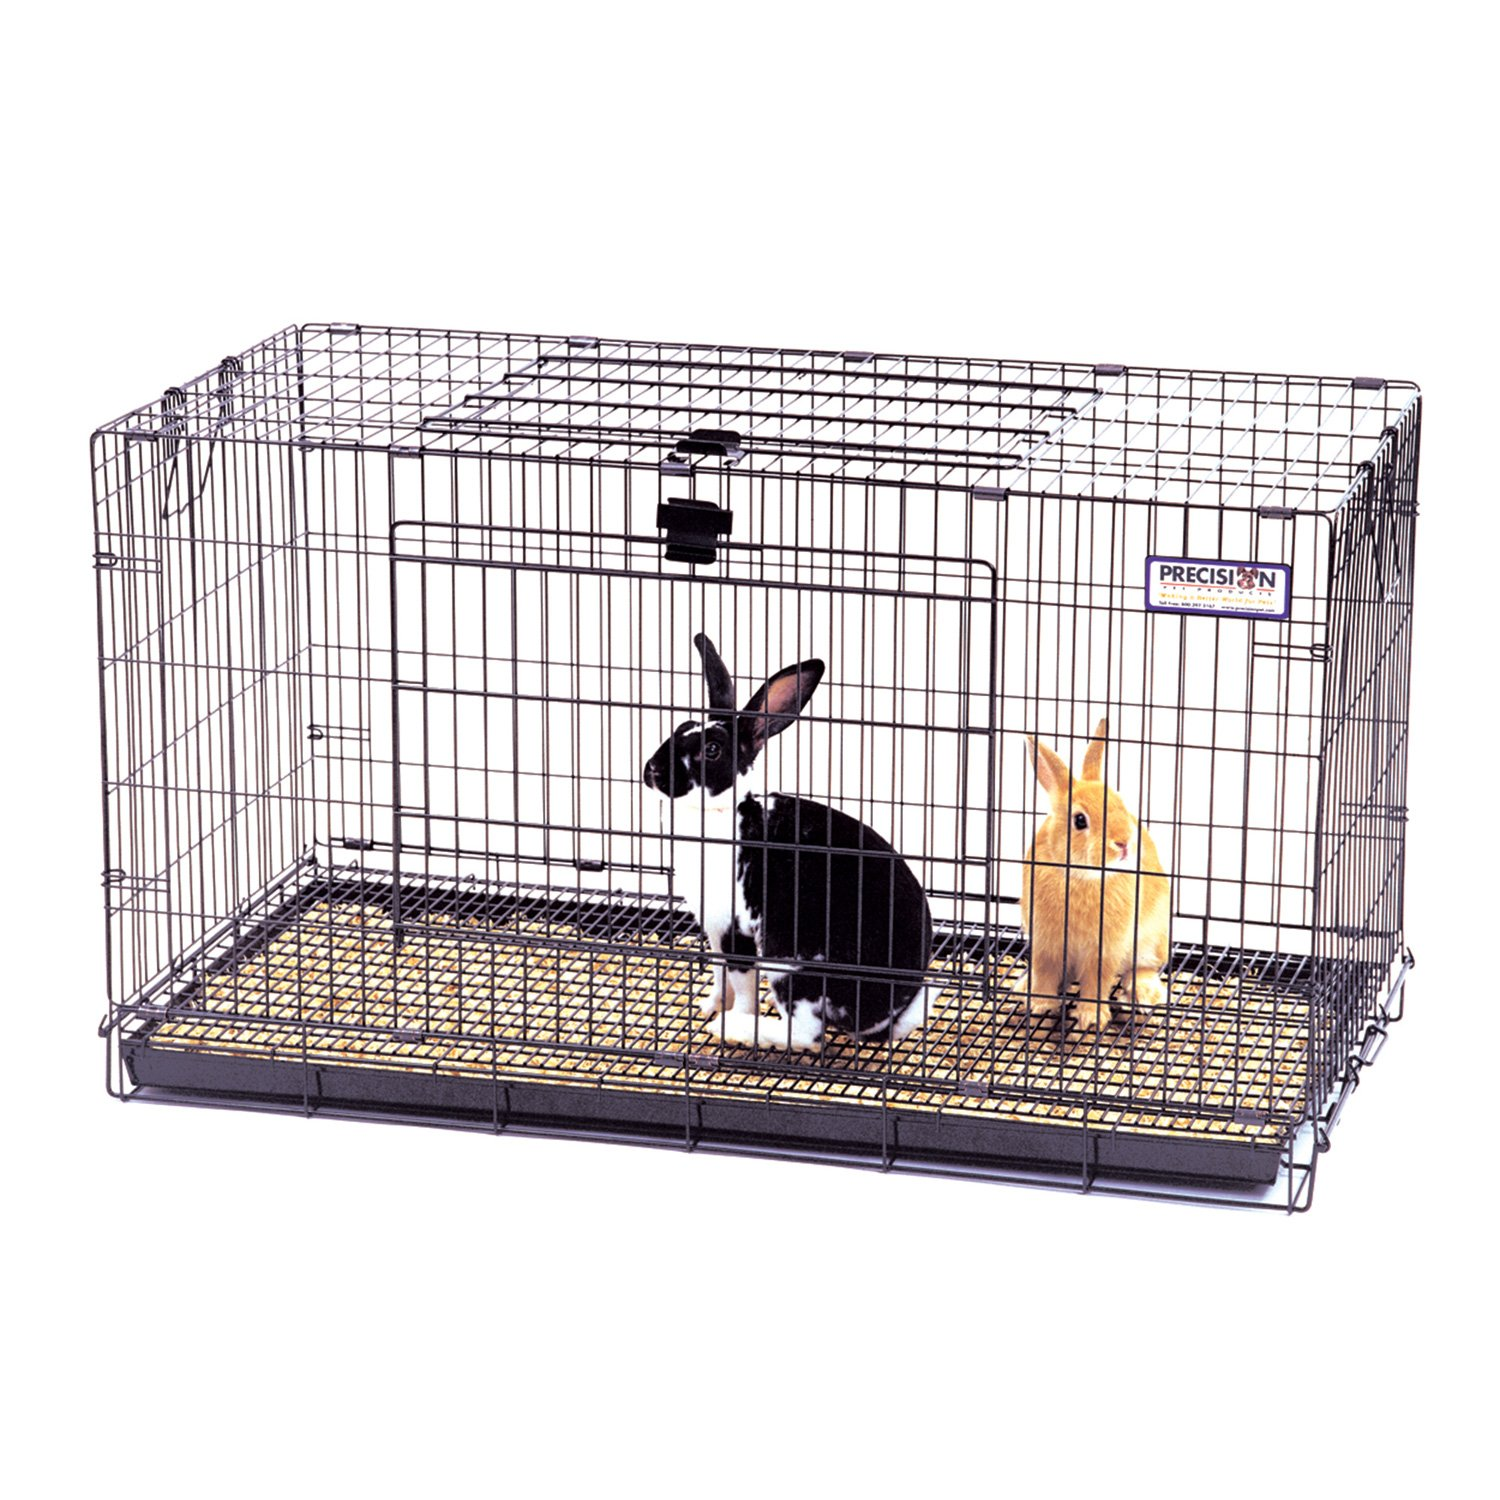 Precision Pet Rabbit Resort Rabbit Cage | Petco